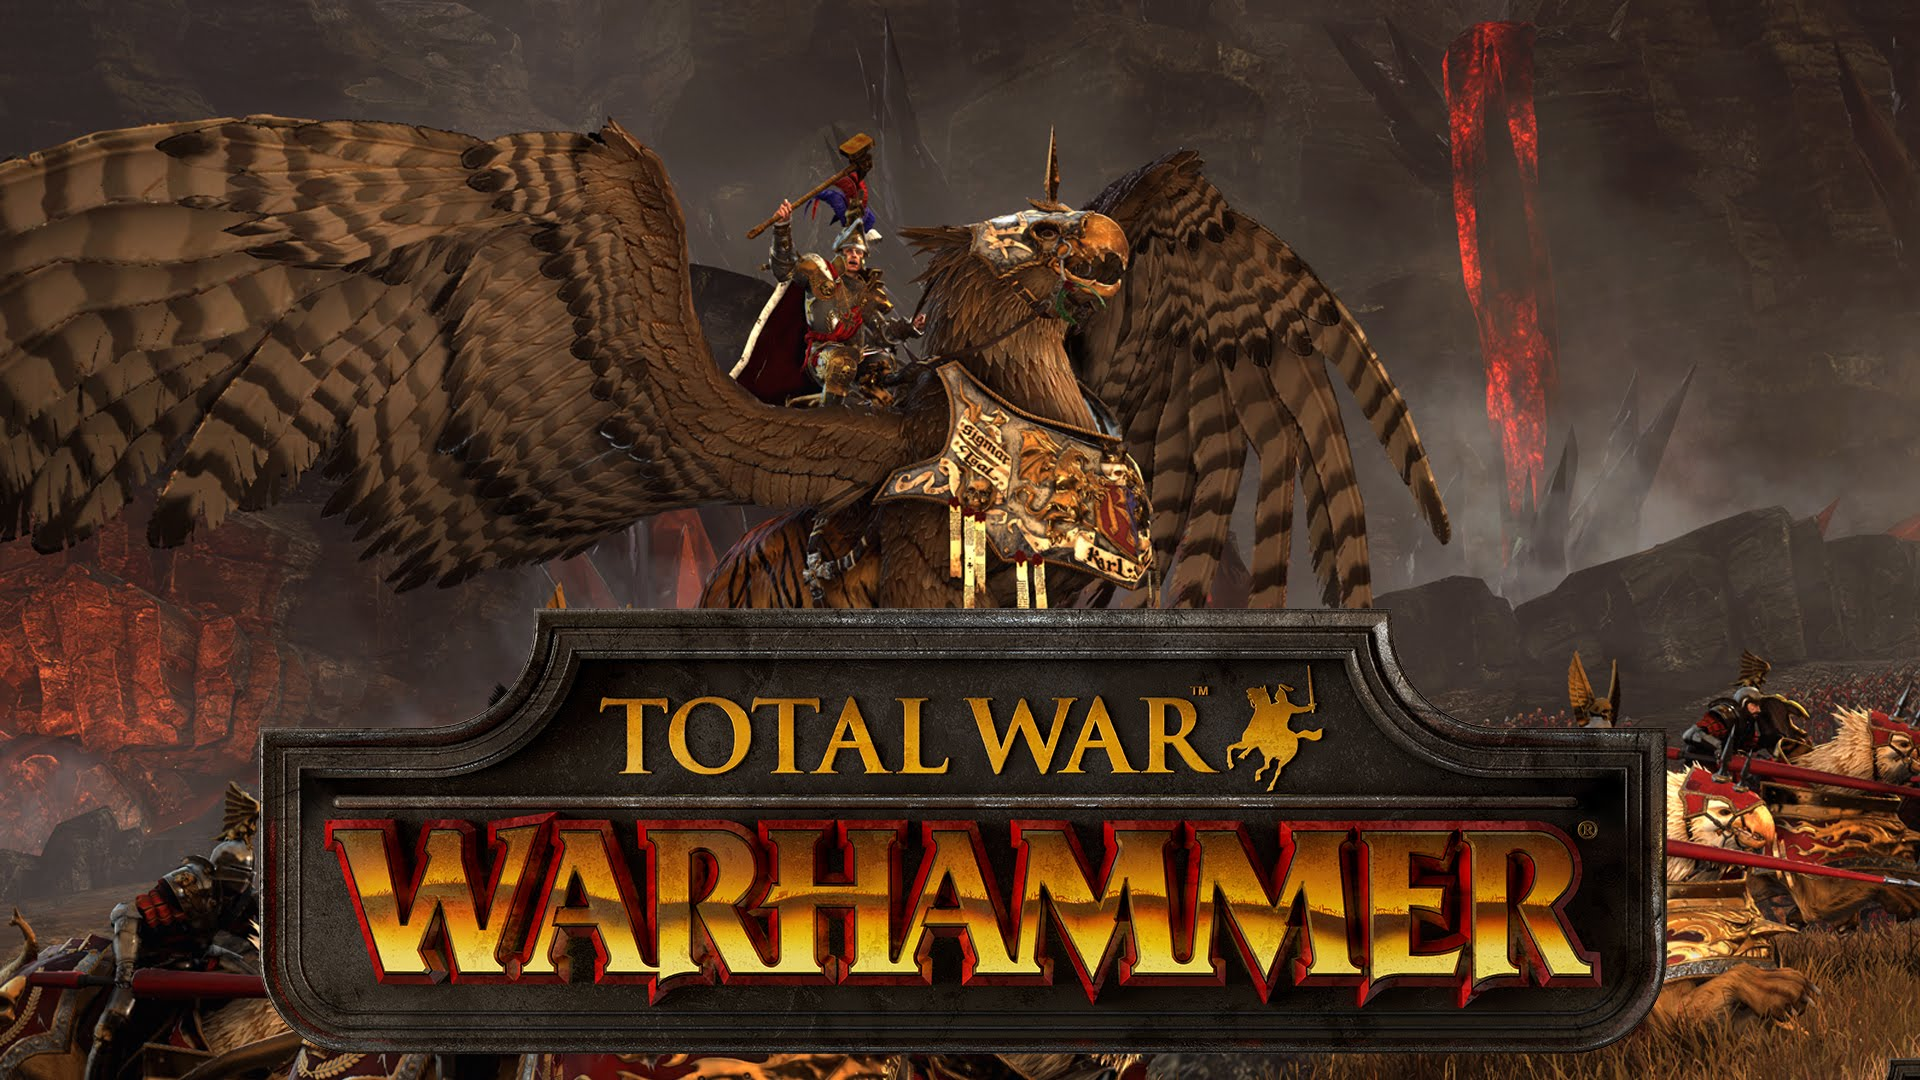 Total War: WARHAMMER (steam key) + free dlc ✌